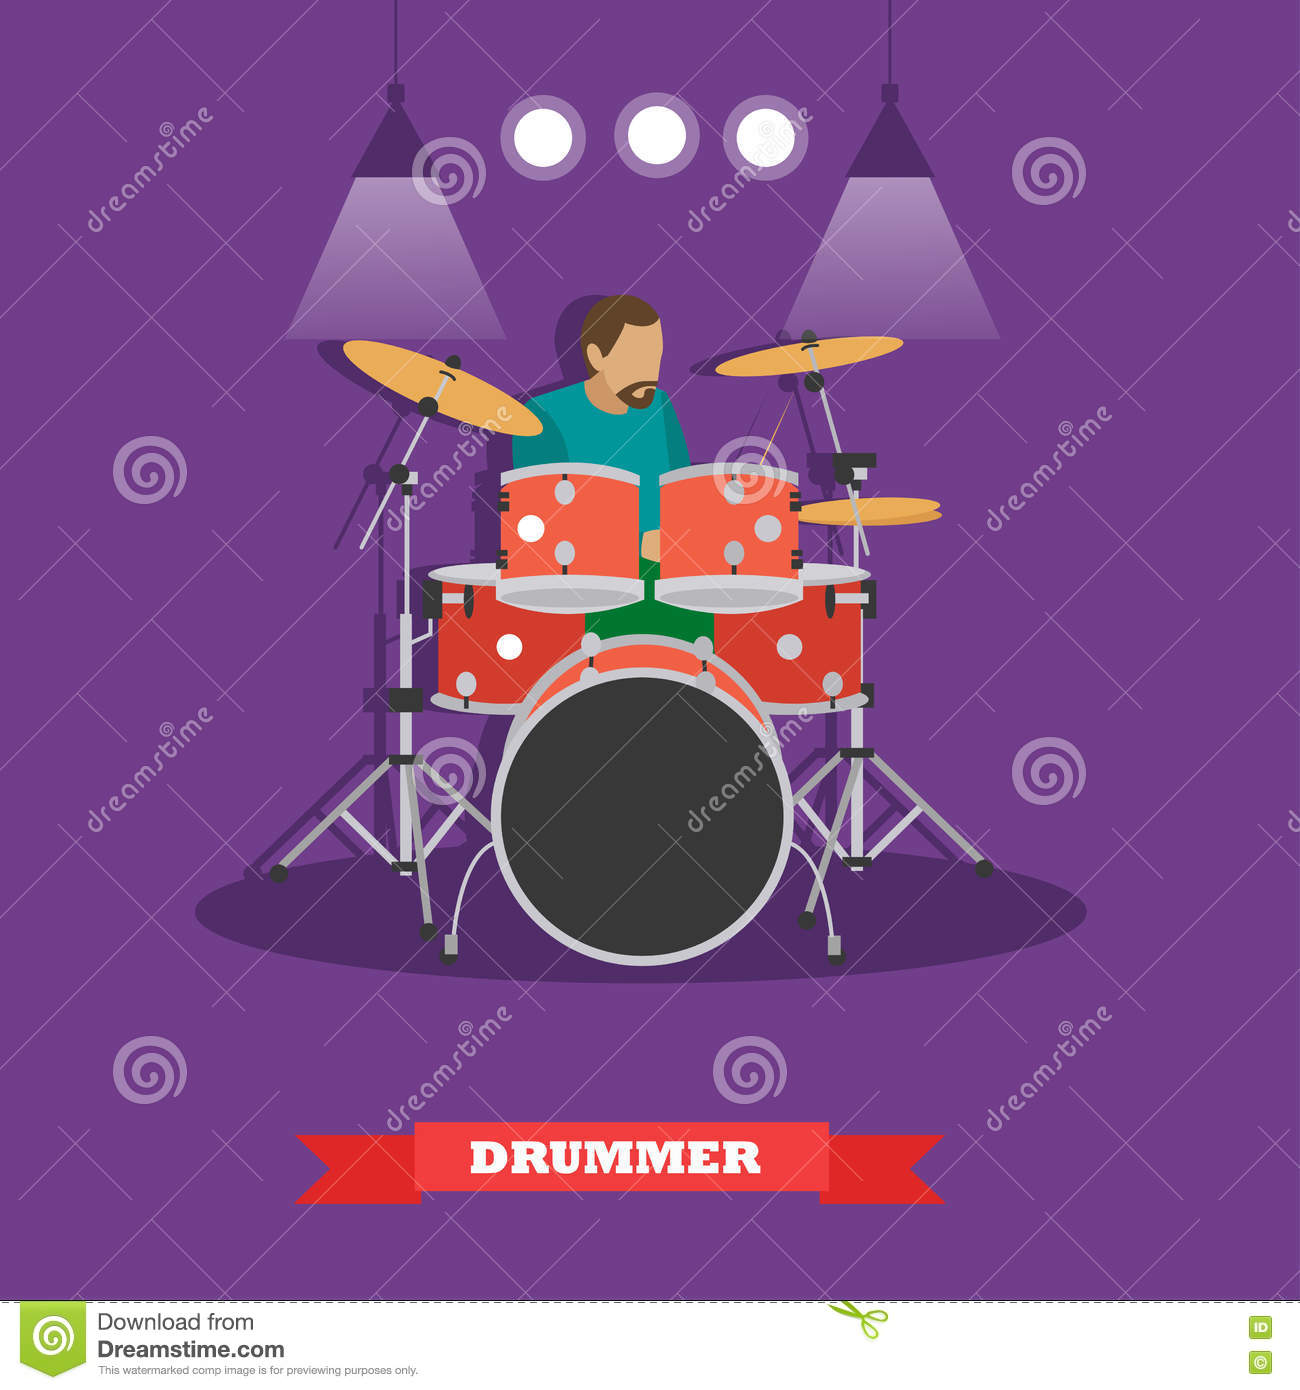 Drummer musician playing drums. Vector illustration in flat style design